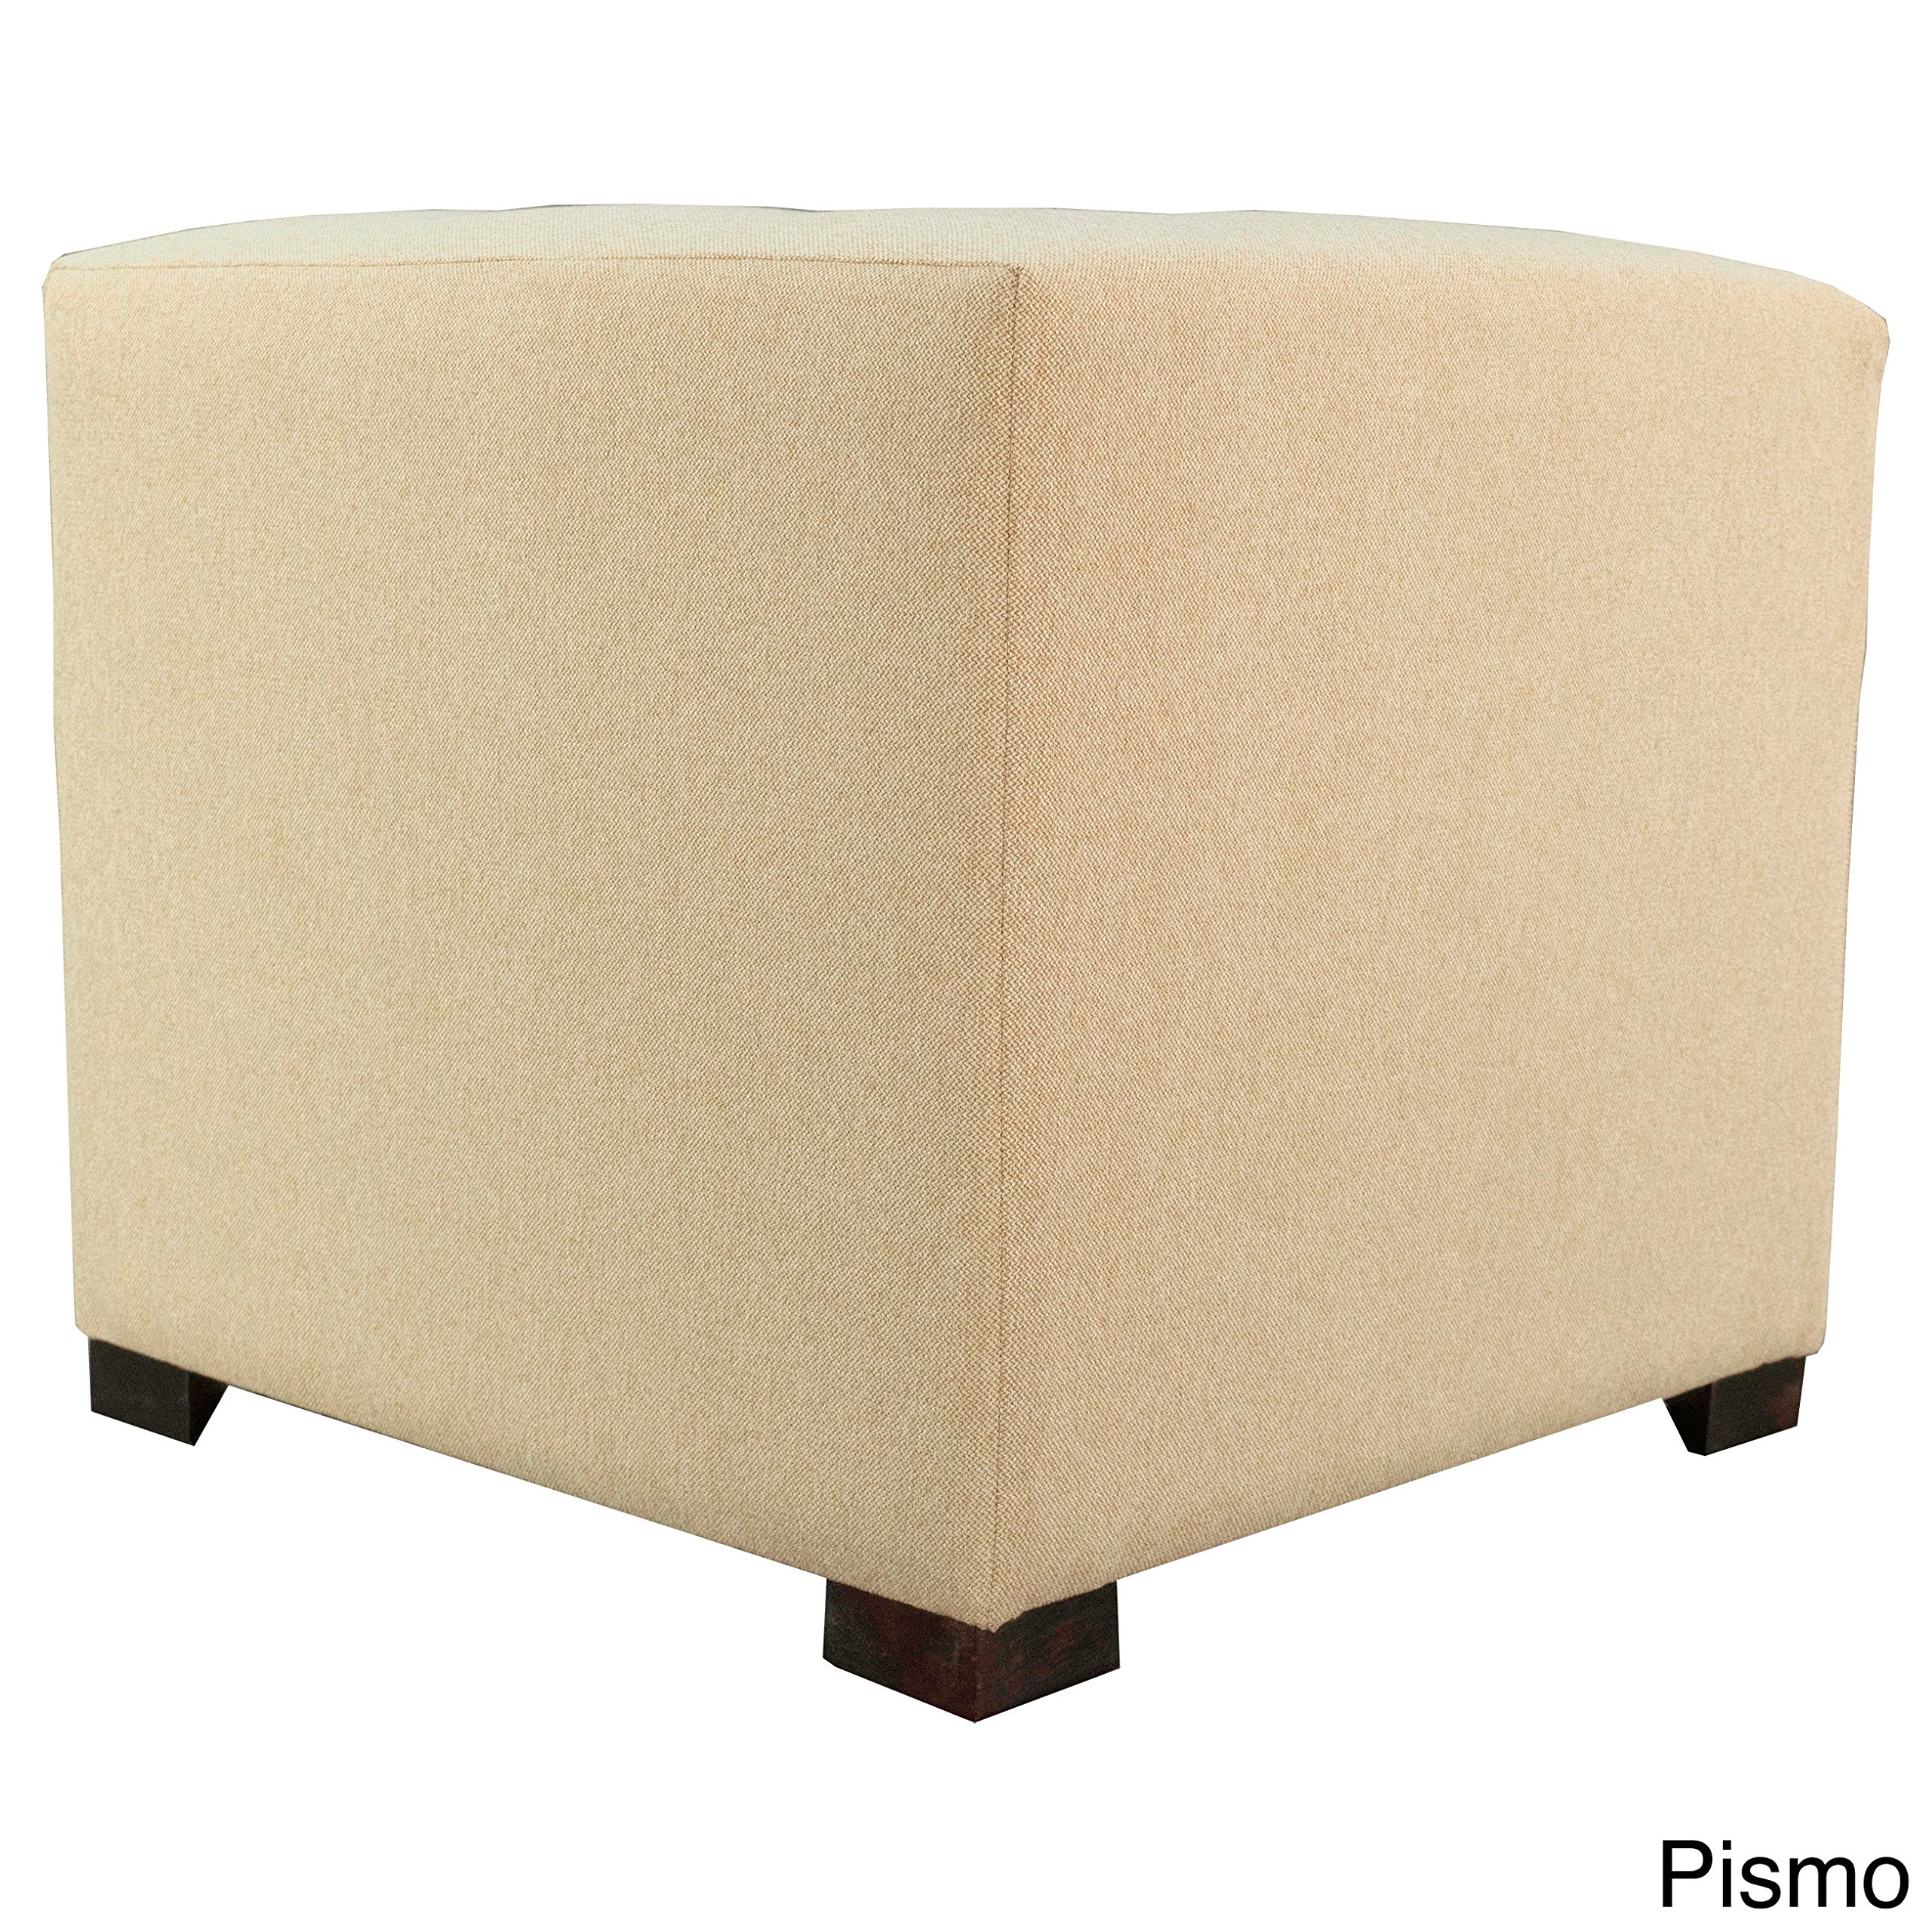 MJL Furniture Designs Merton Collection, Fabric Upholstered Modern Cube Foot Rest Ottoman with 4 Button Tufting, Dawson Series, Pismo